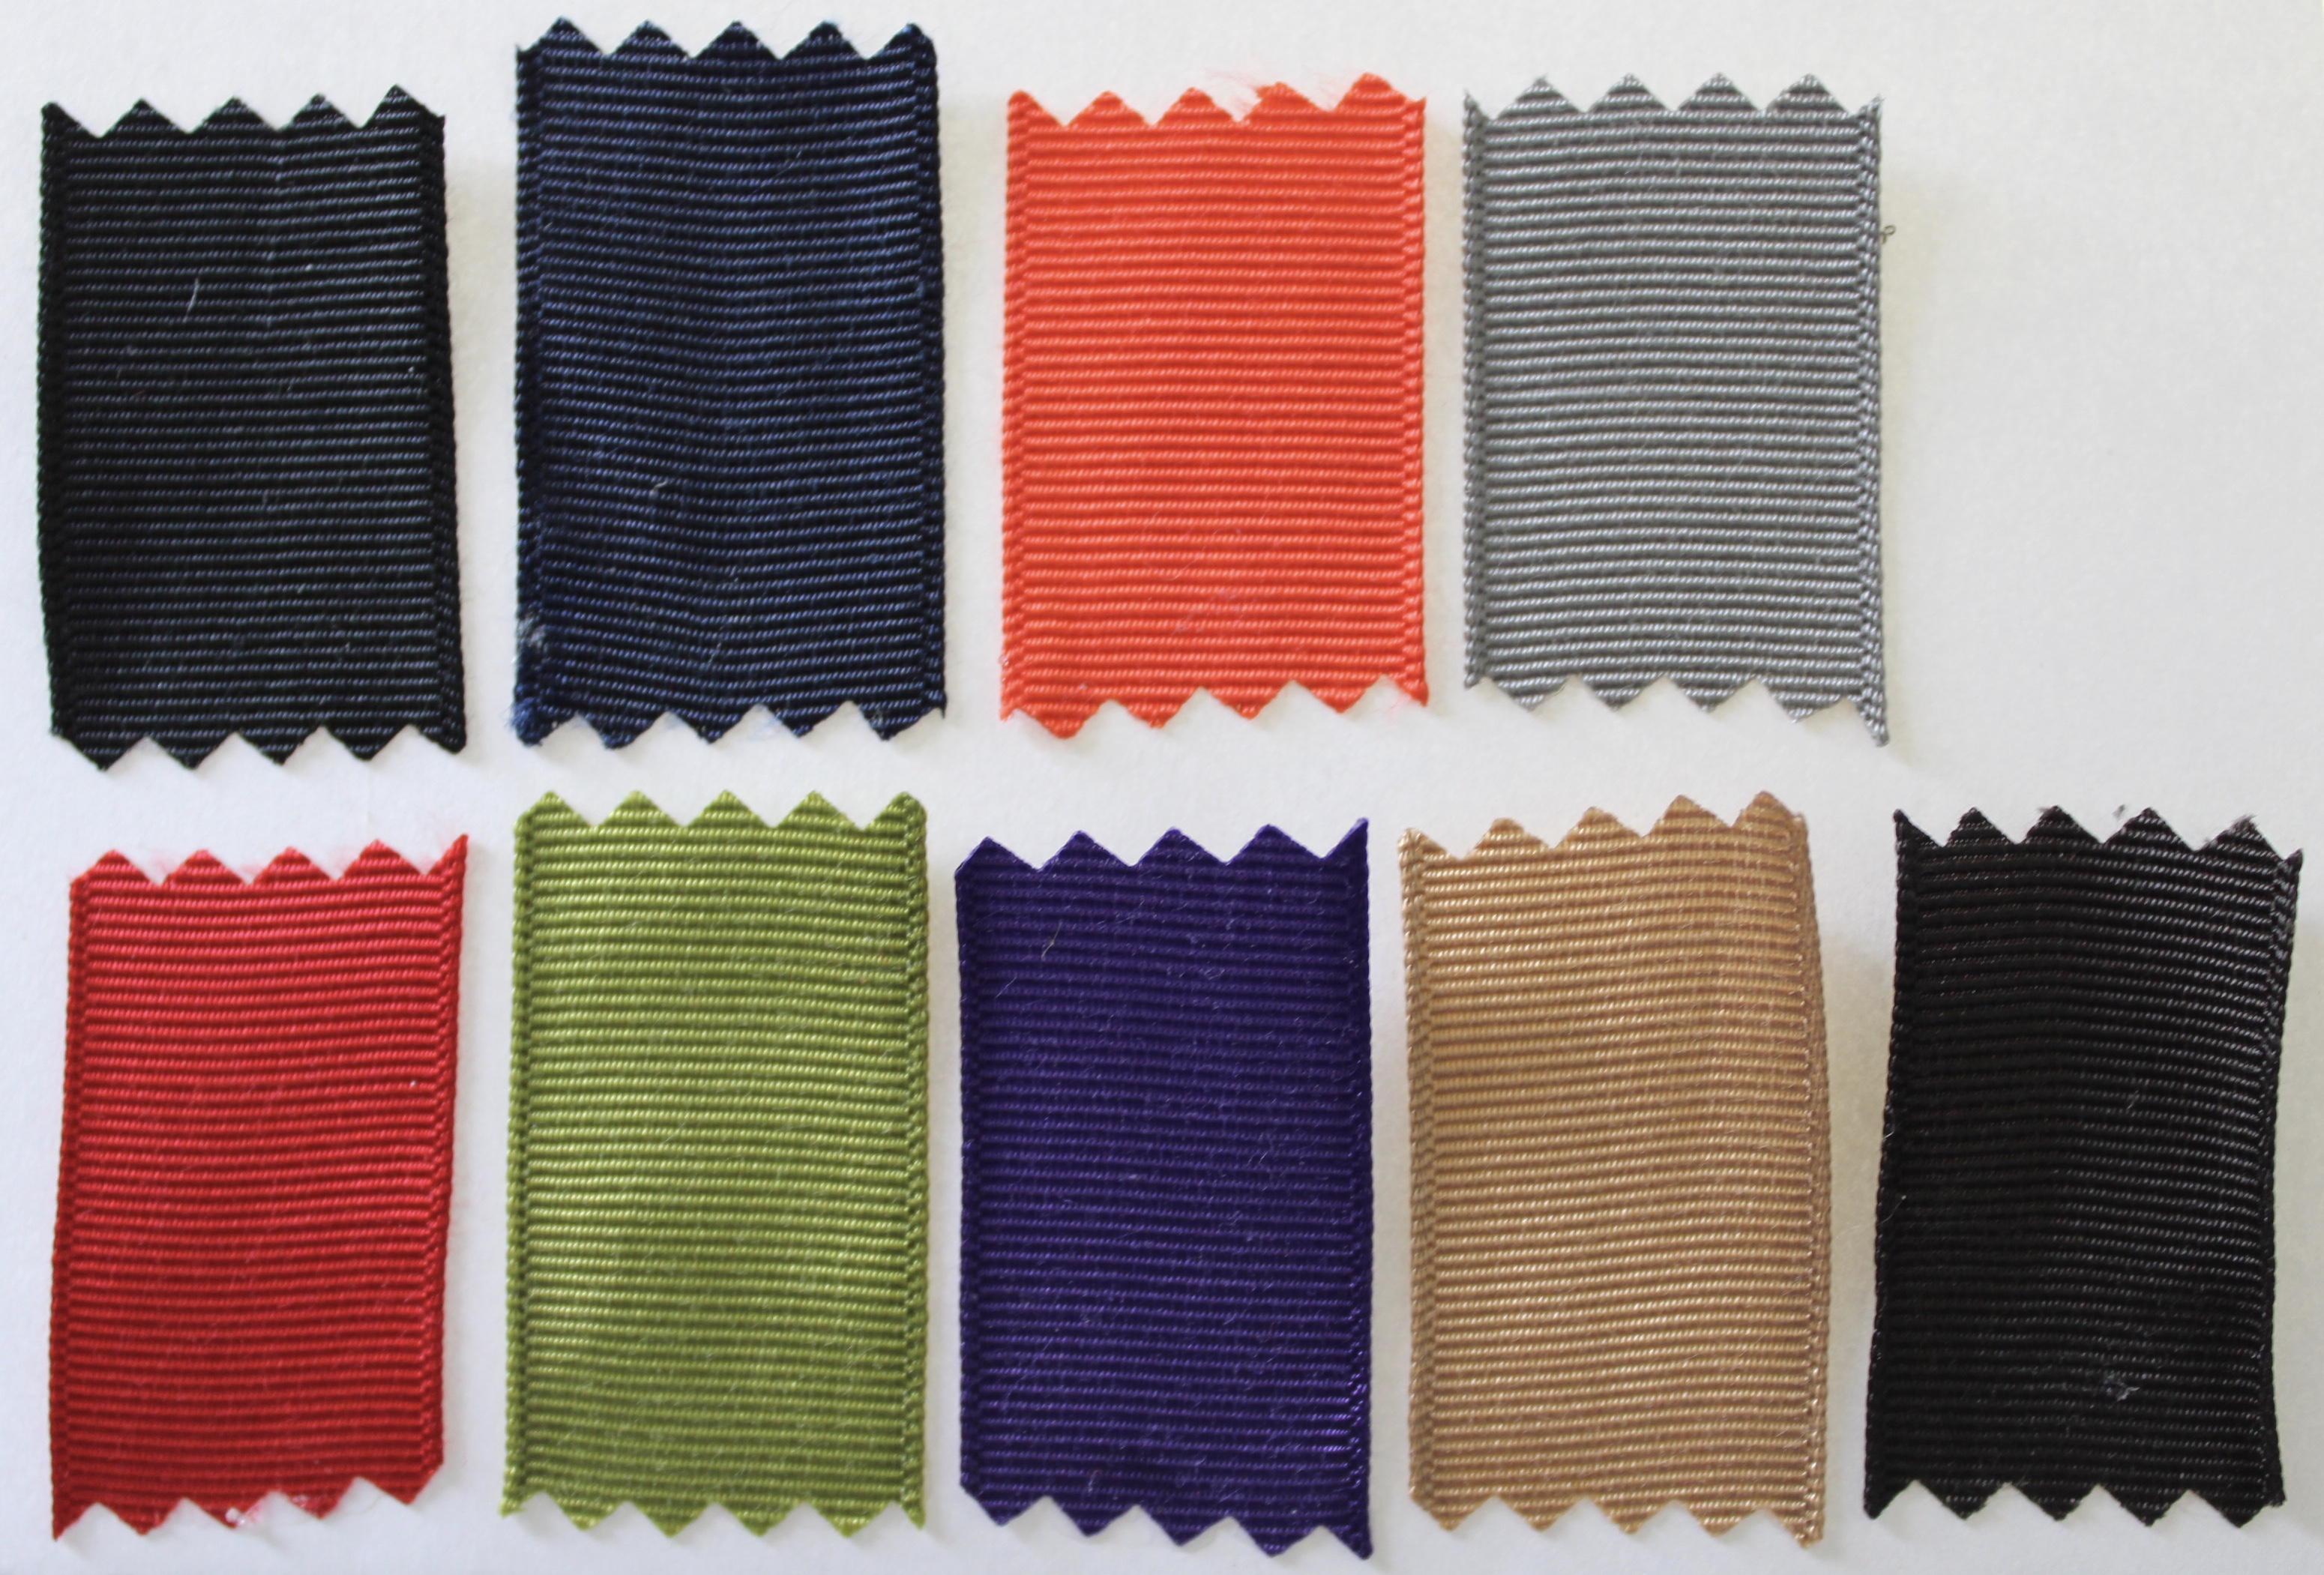 Ribbon Colours: black, navy blue, orange, light grey, red, grass green, purple, honey, black